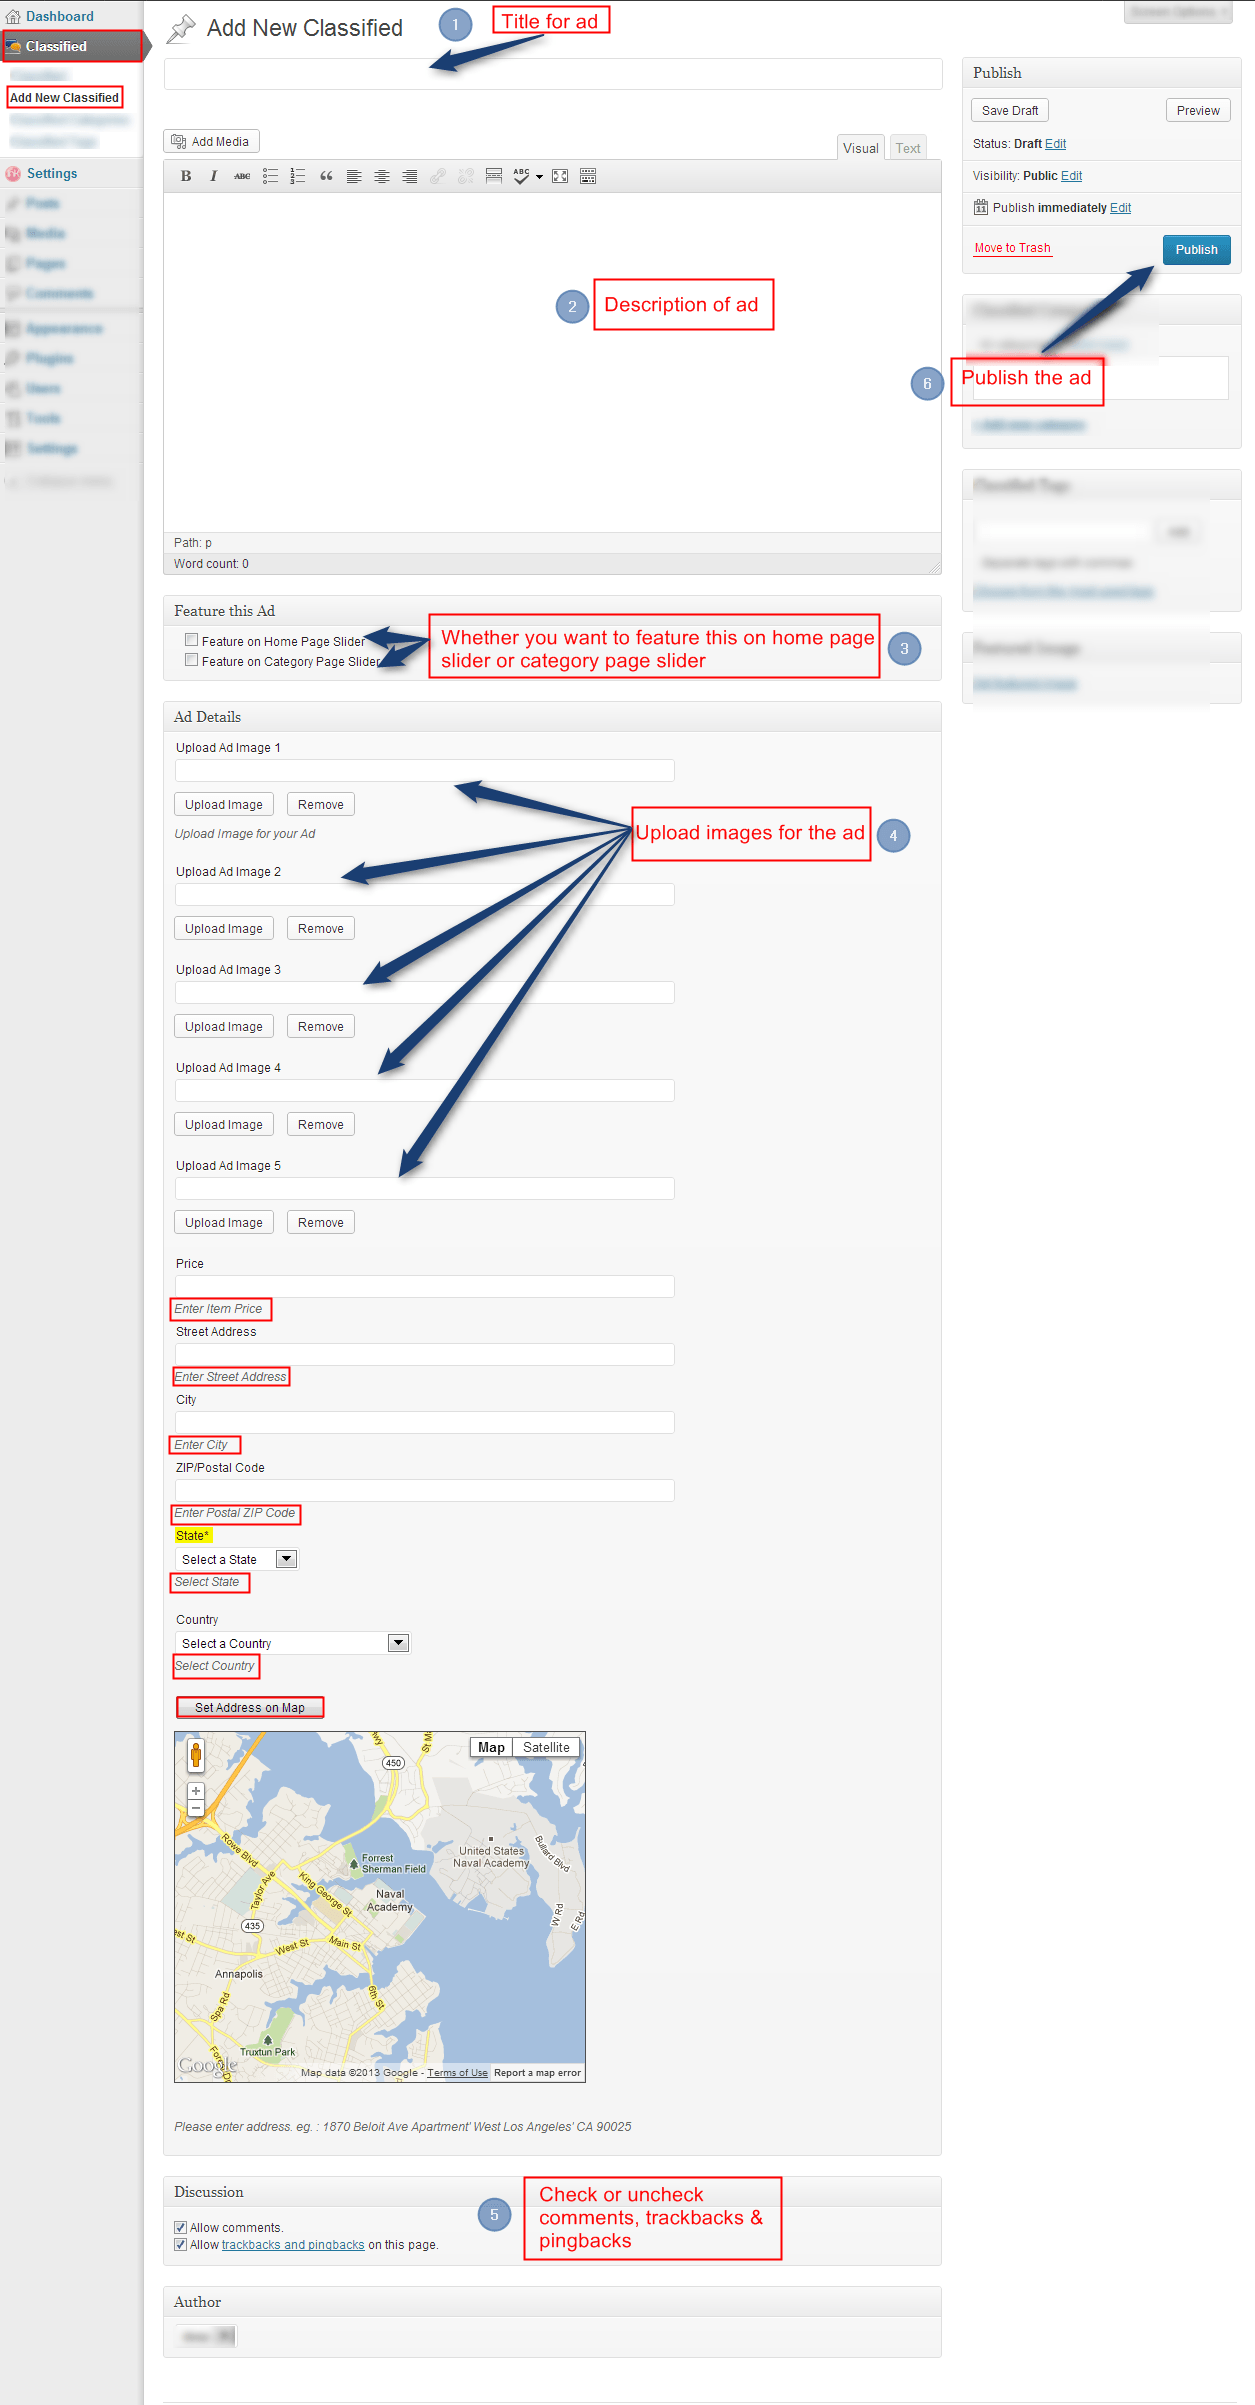 Adding ad from back end